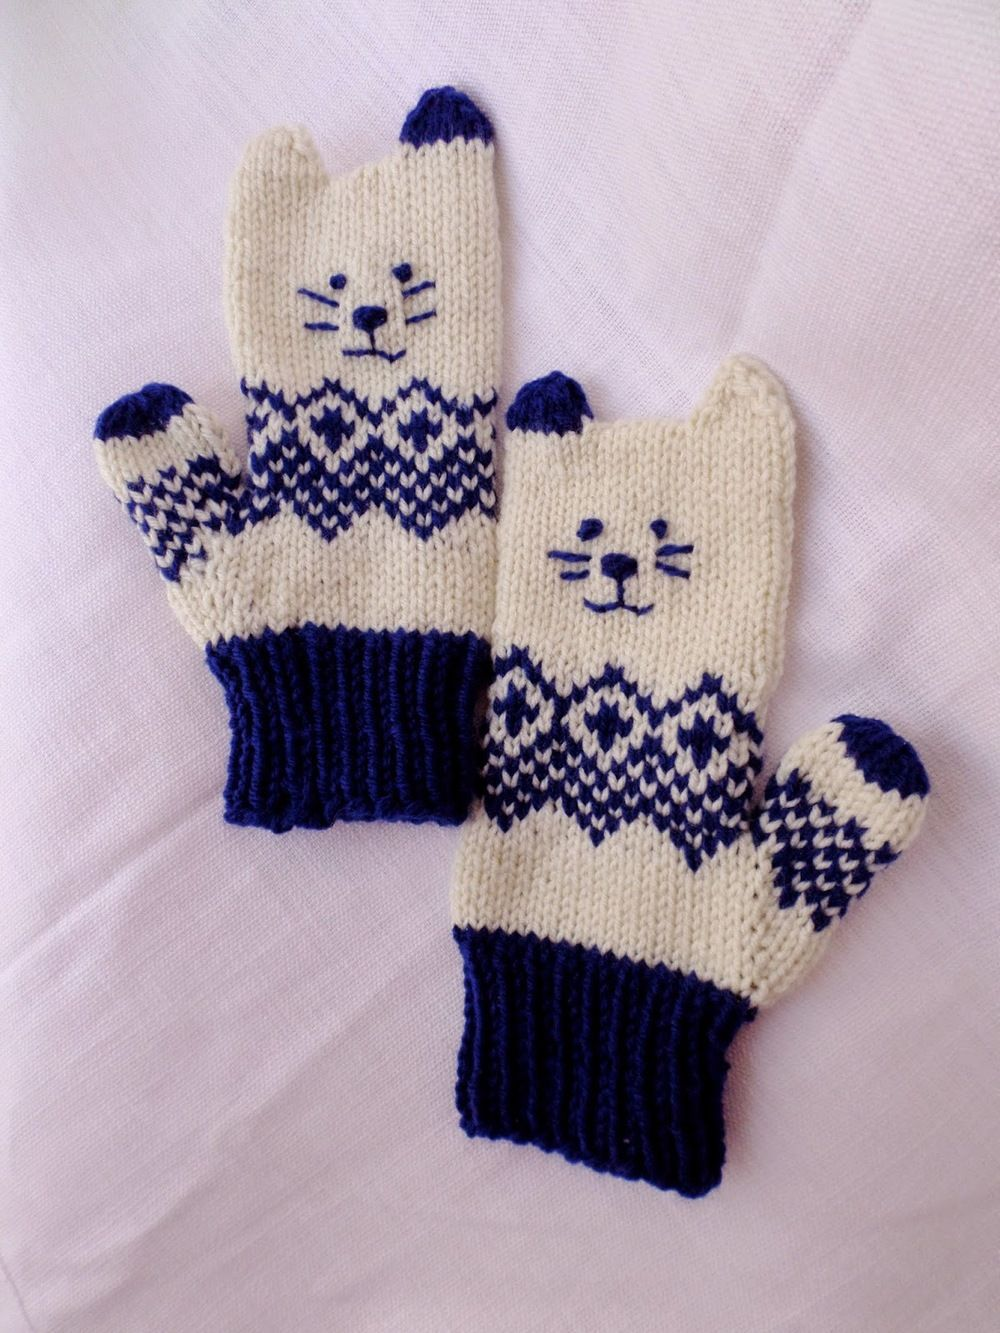 Insanely Adorable Kitten Mittens #adorablekittens